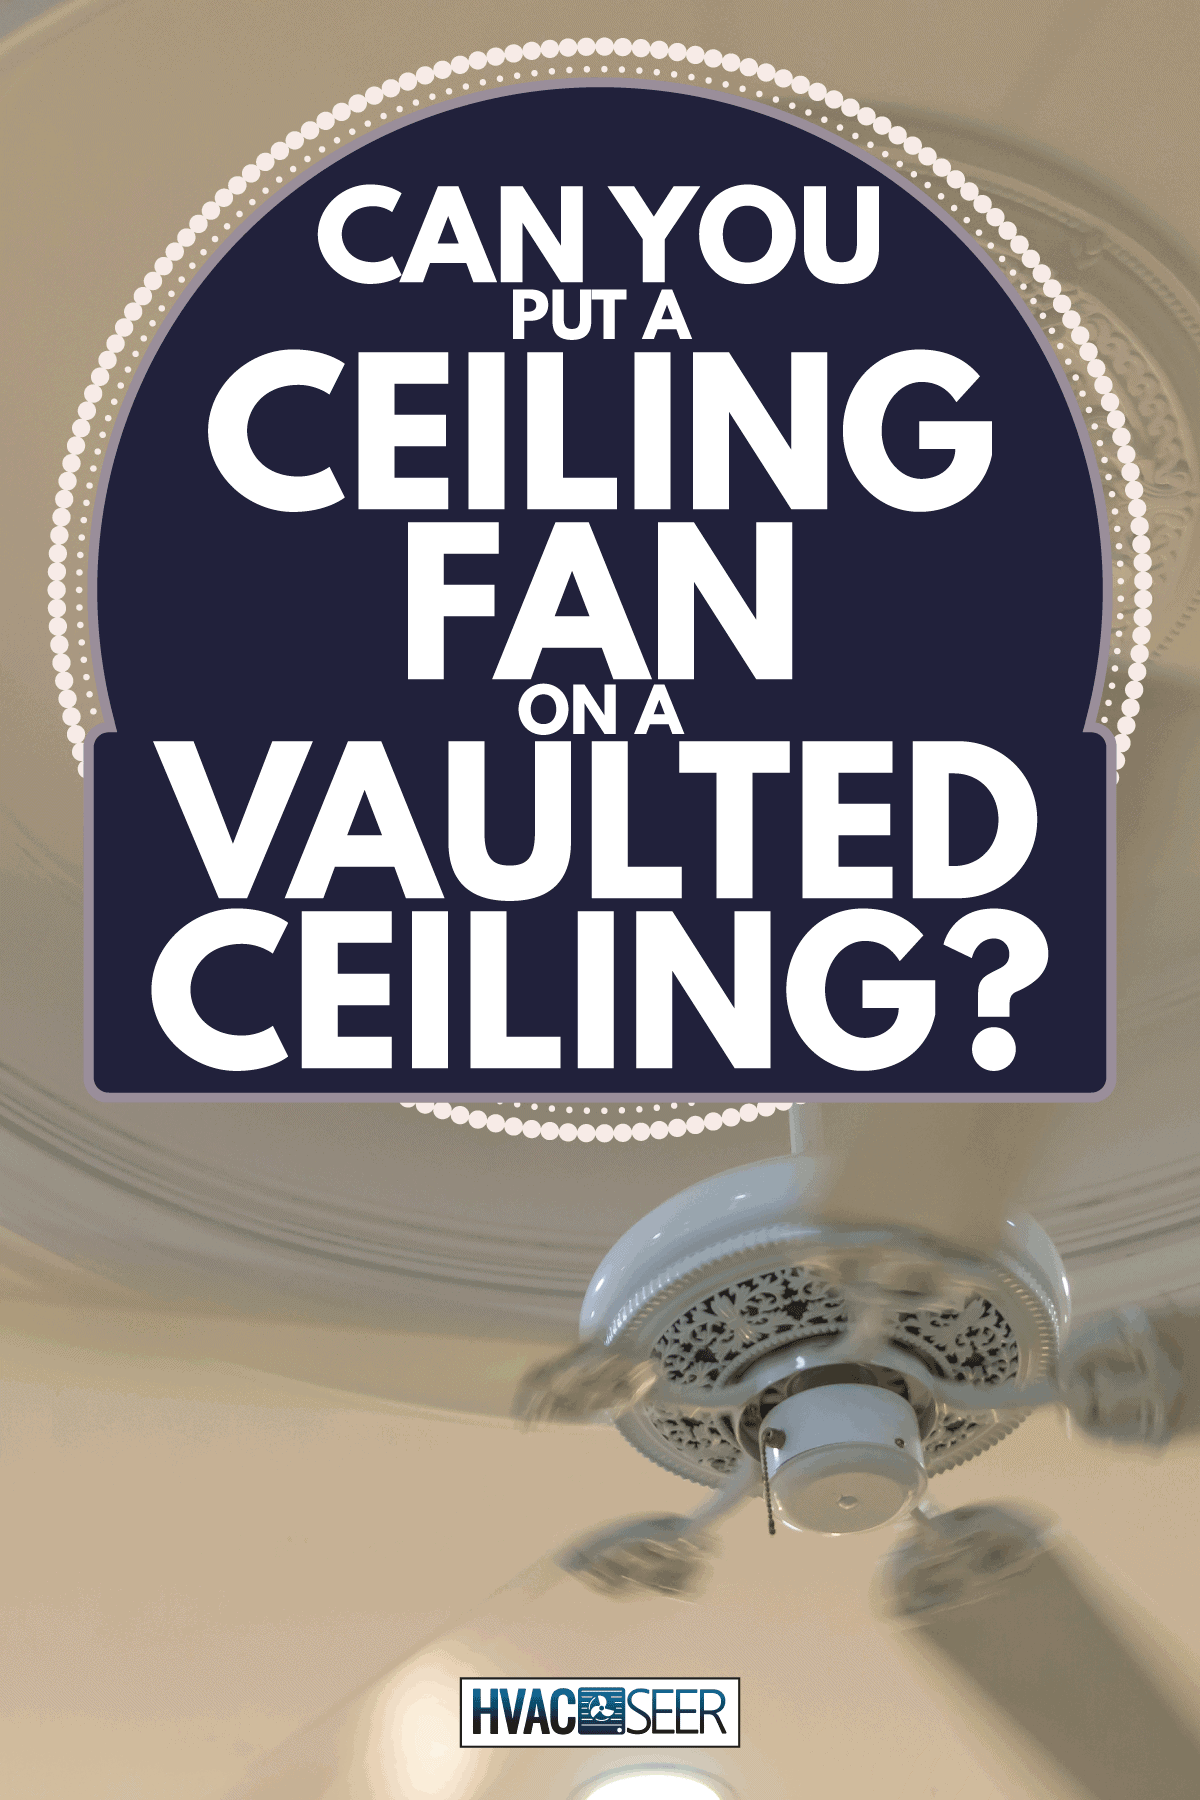 ceiling fan spinning while installed on a vaulted white ceiling. Can You Put A Ceiling Fan On A Vaulted Ceiling